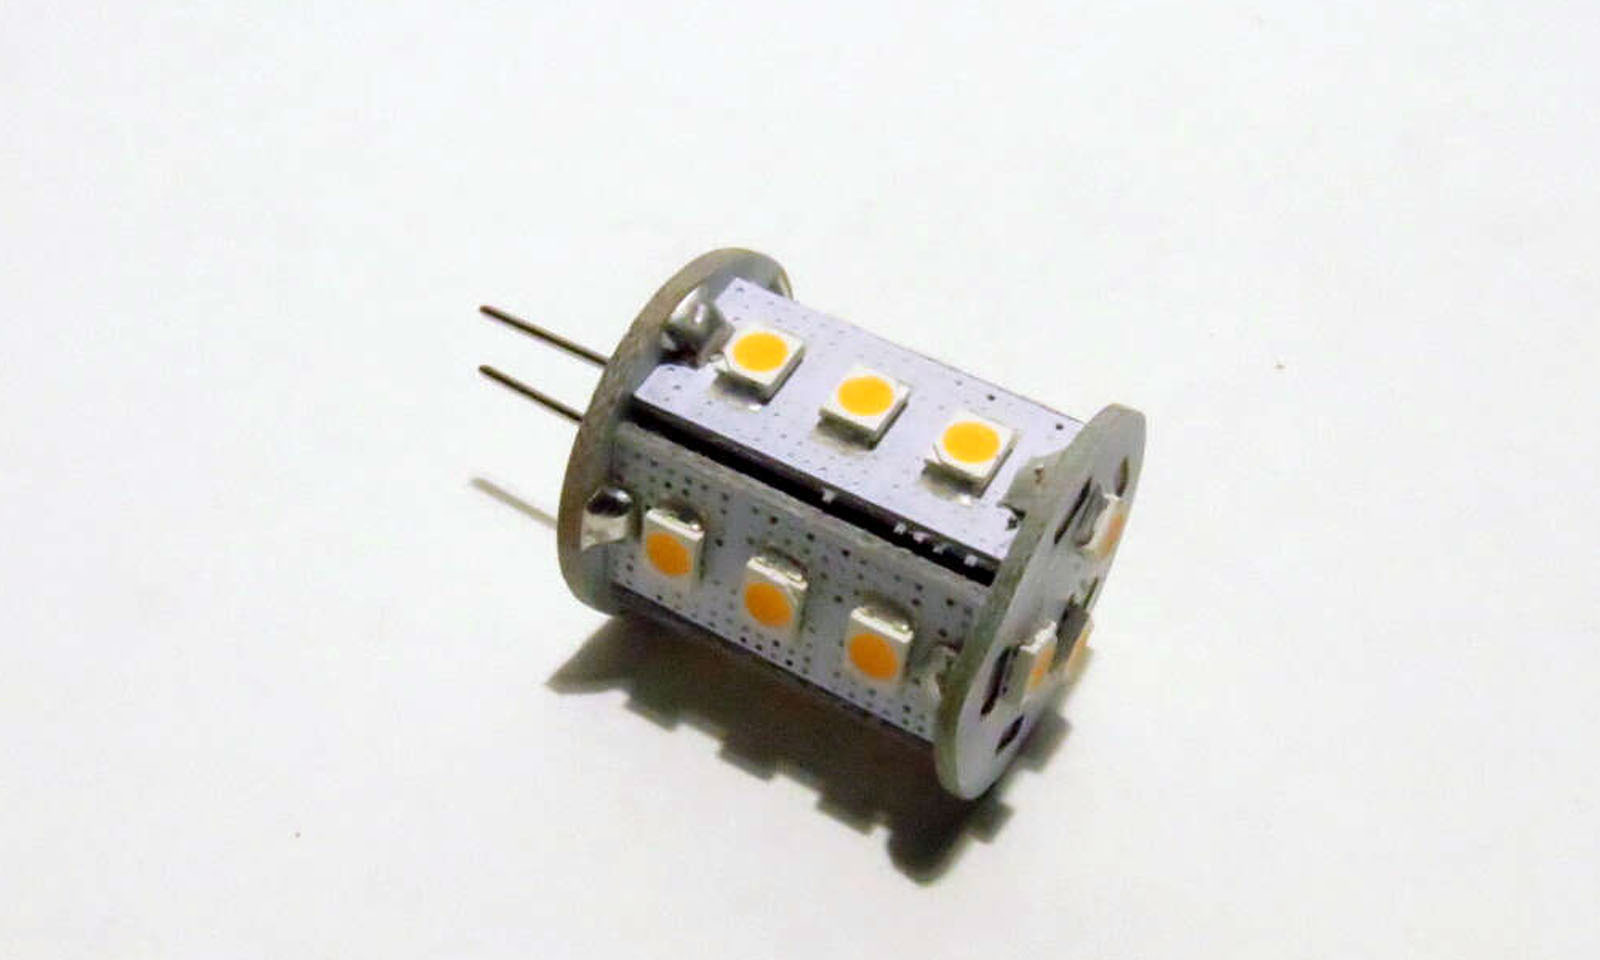 Stiftsockel G4V 18 LED SMD 2828 10-30V warmweiß